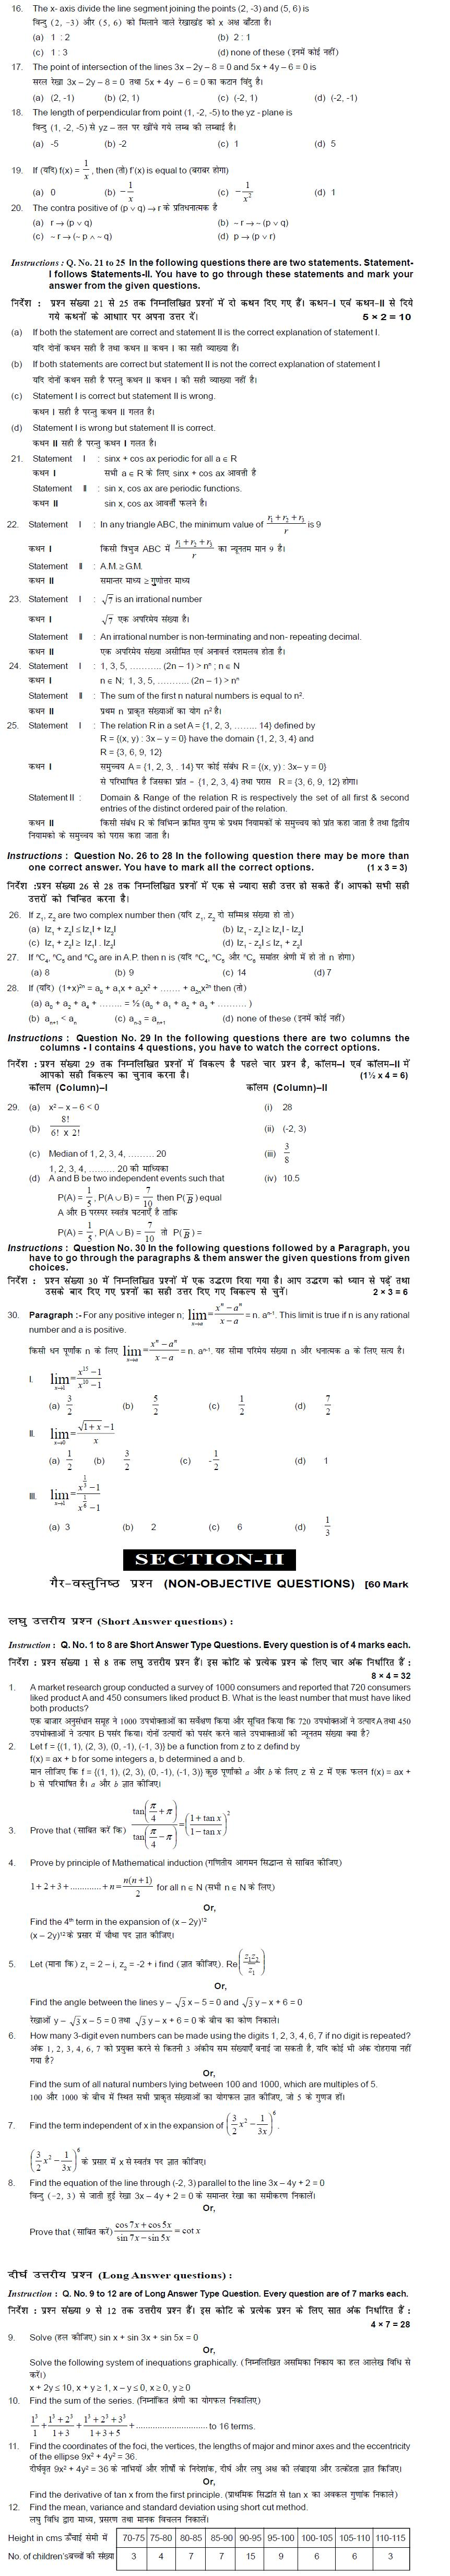 Bihar Board Class XI Science Model Question Papers - Mathematics